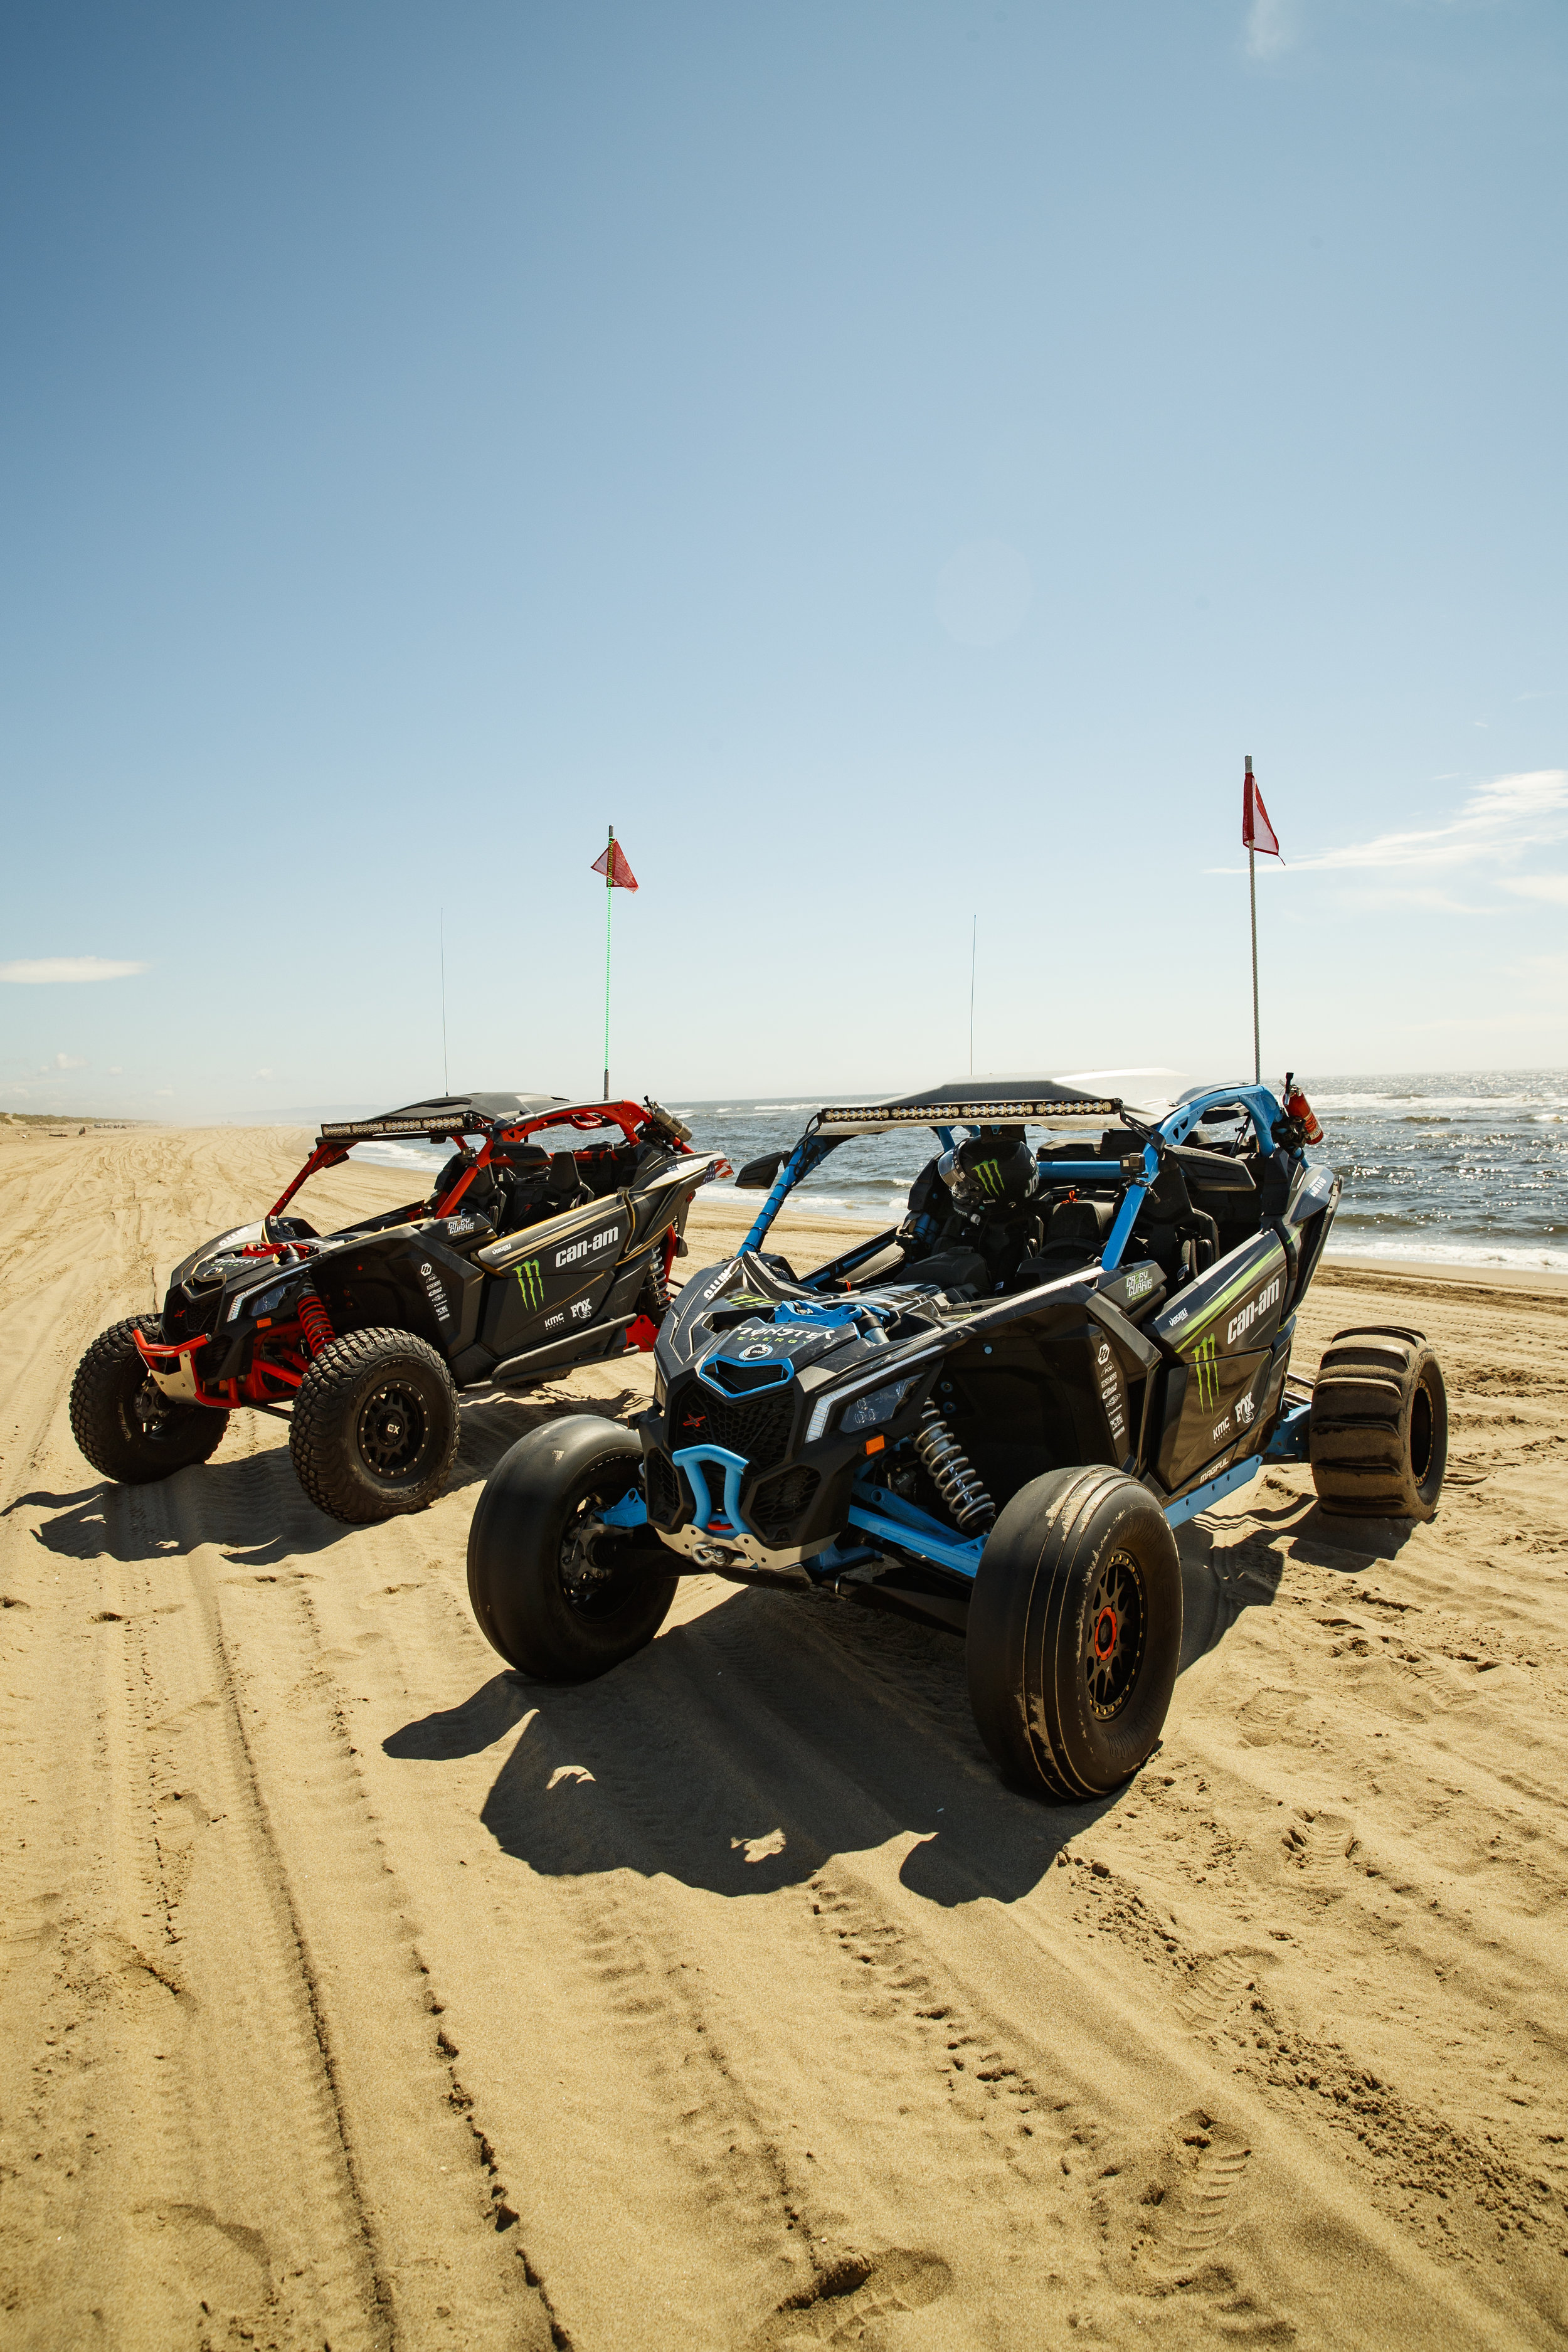 CaseyCurrie_UTVTakeover_CoosBay_Oregon_Can-Am_003.jpg